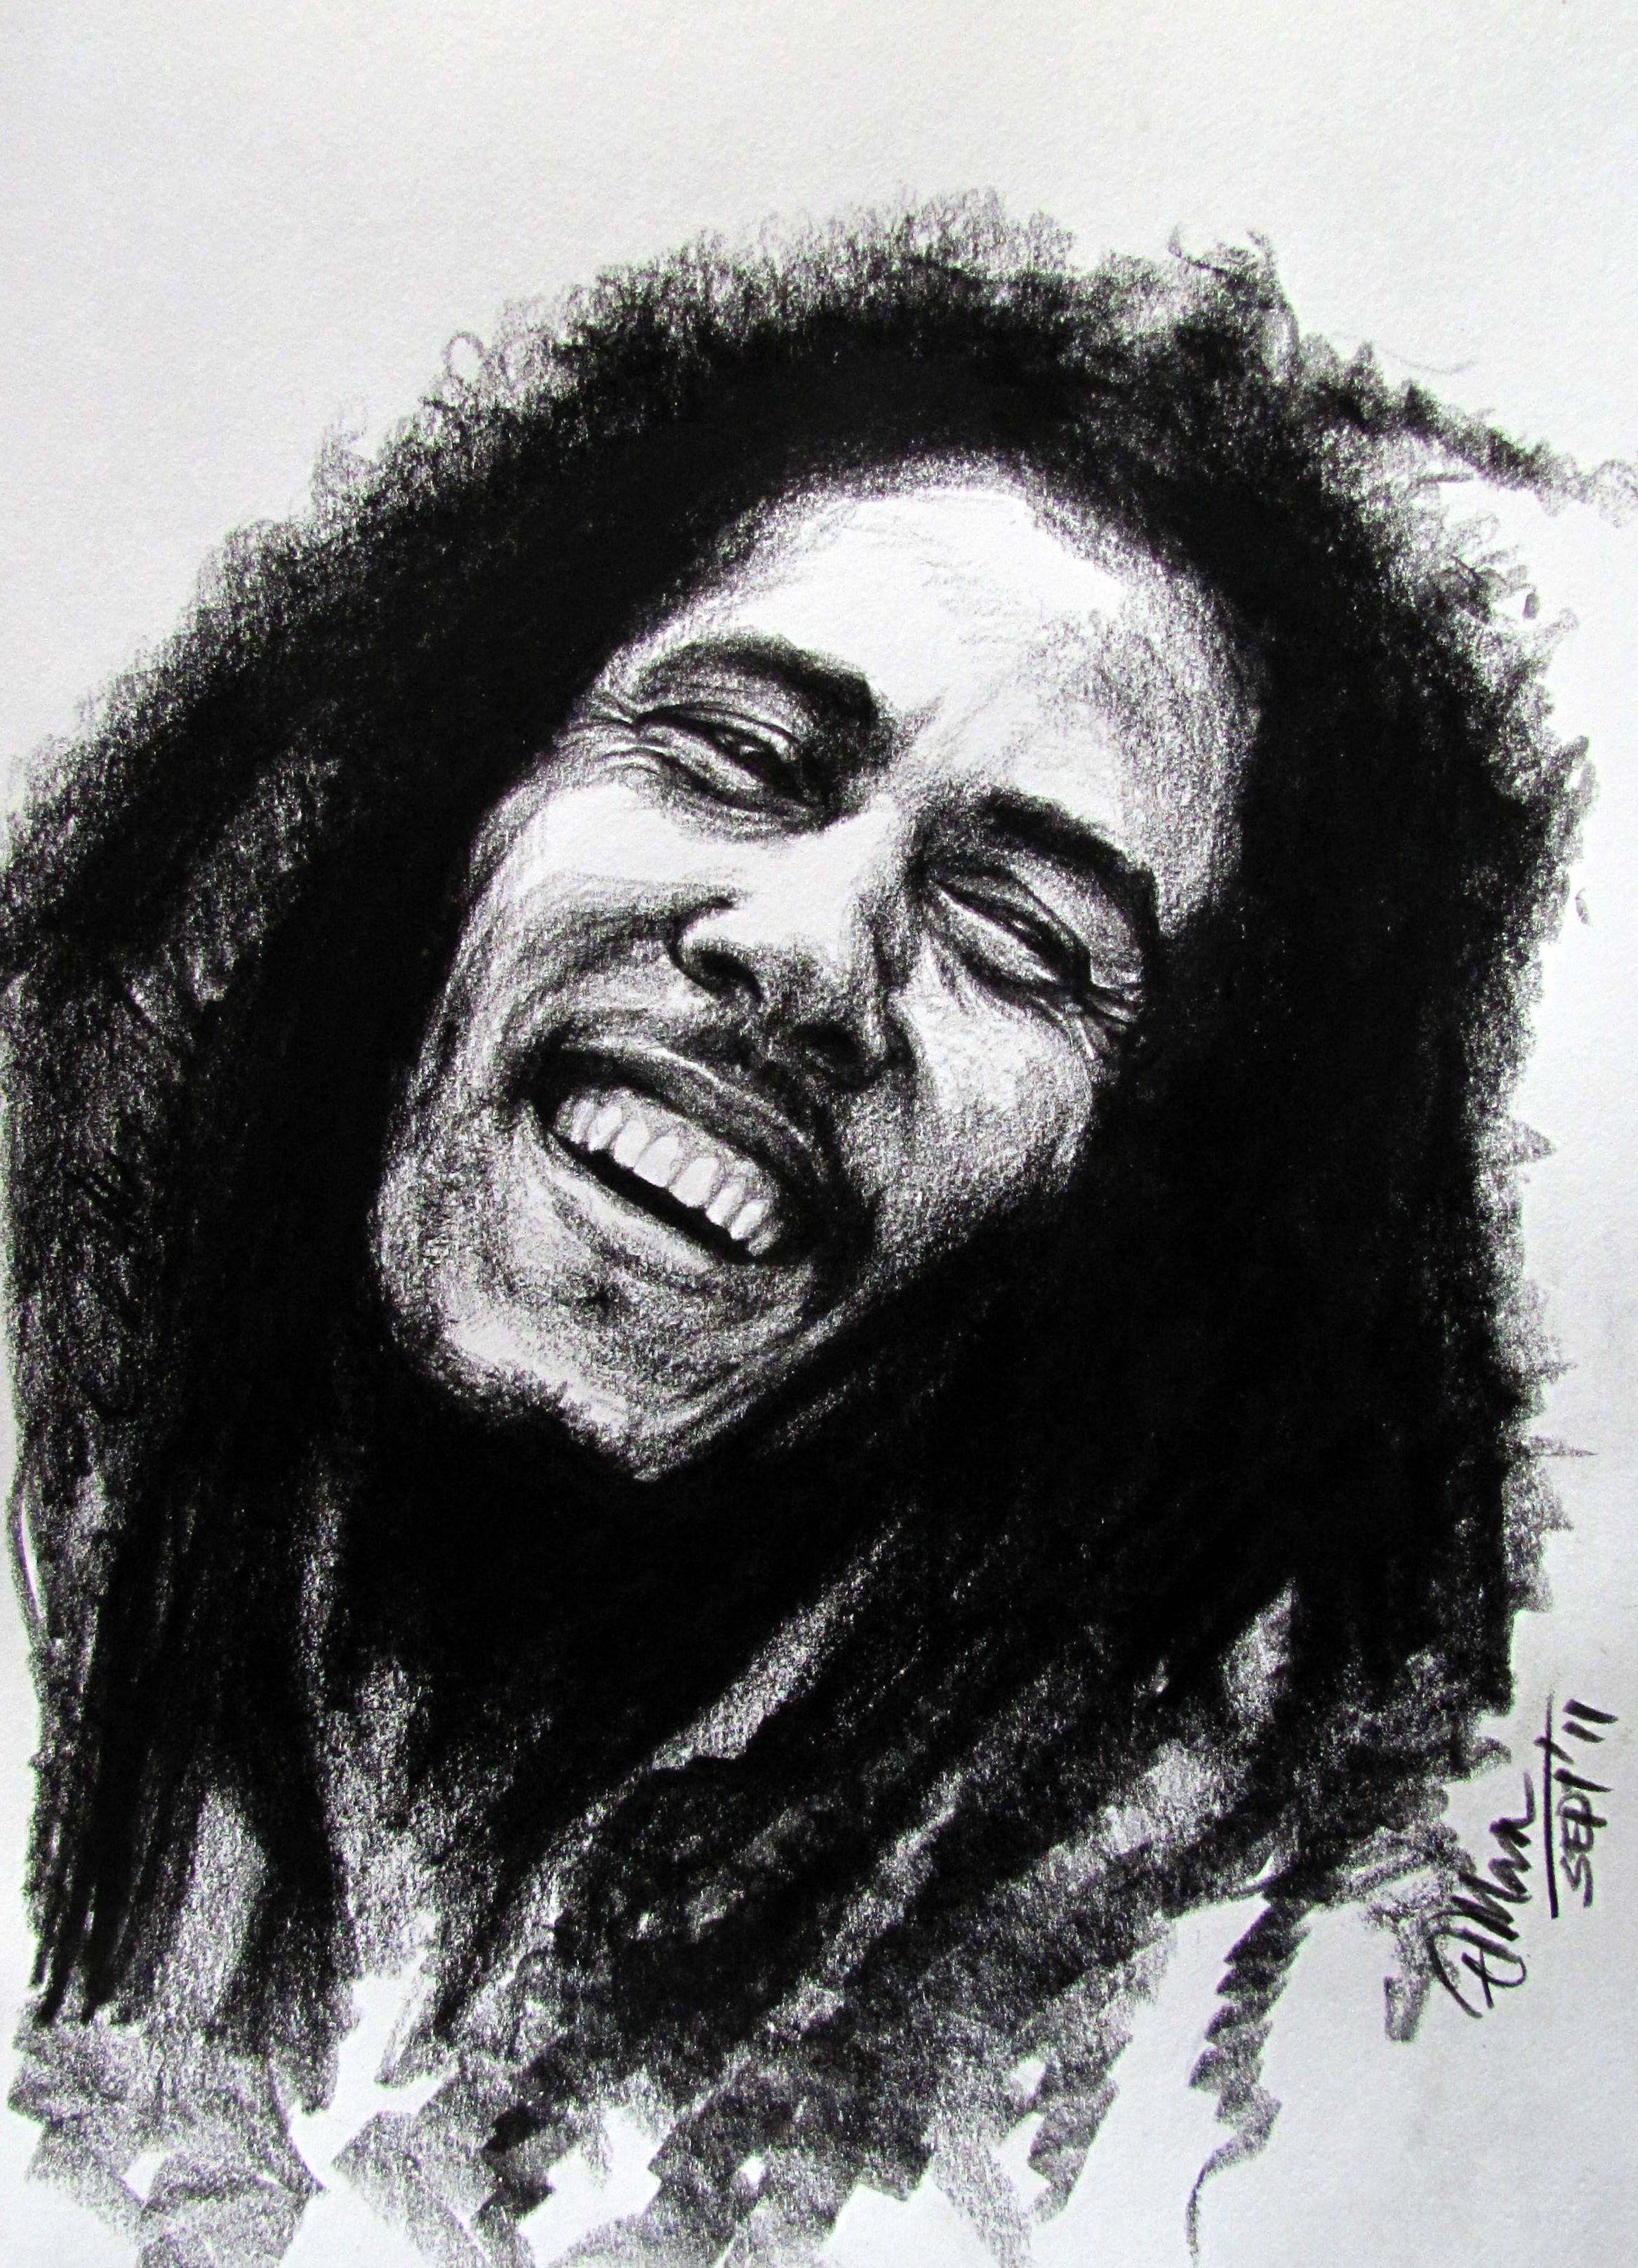 Drawings of people crying bob marley pencil jammers mias